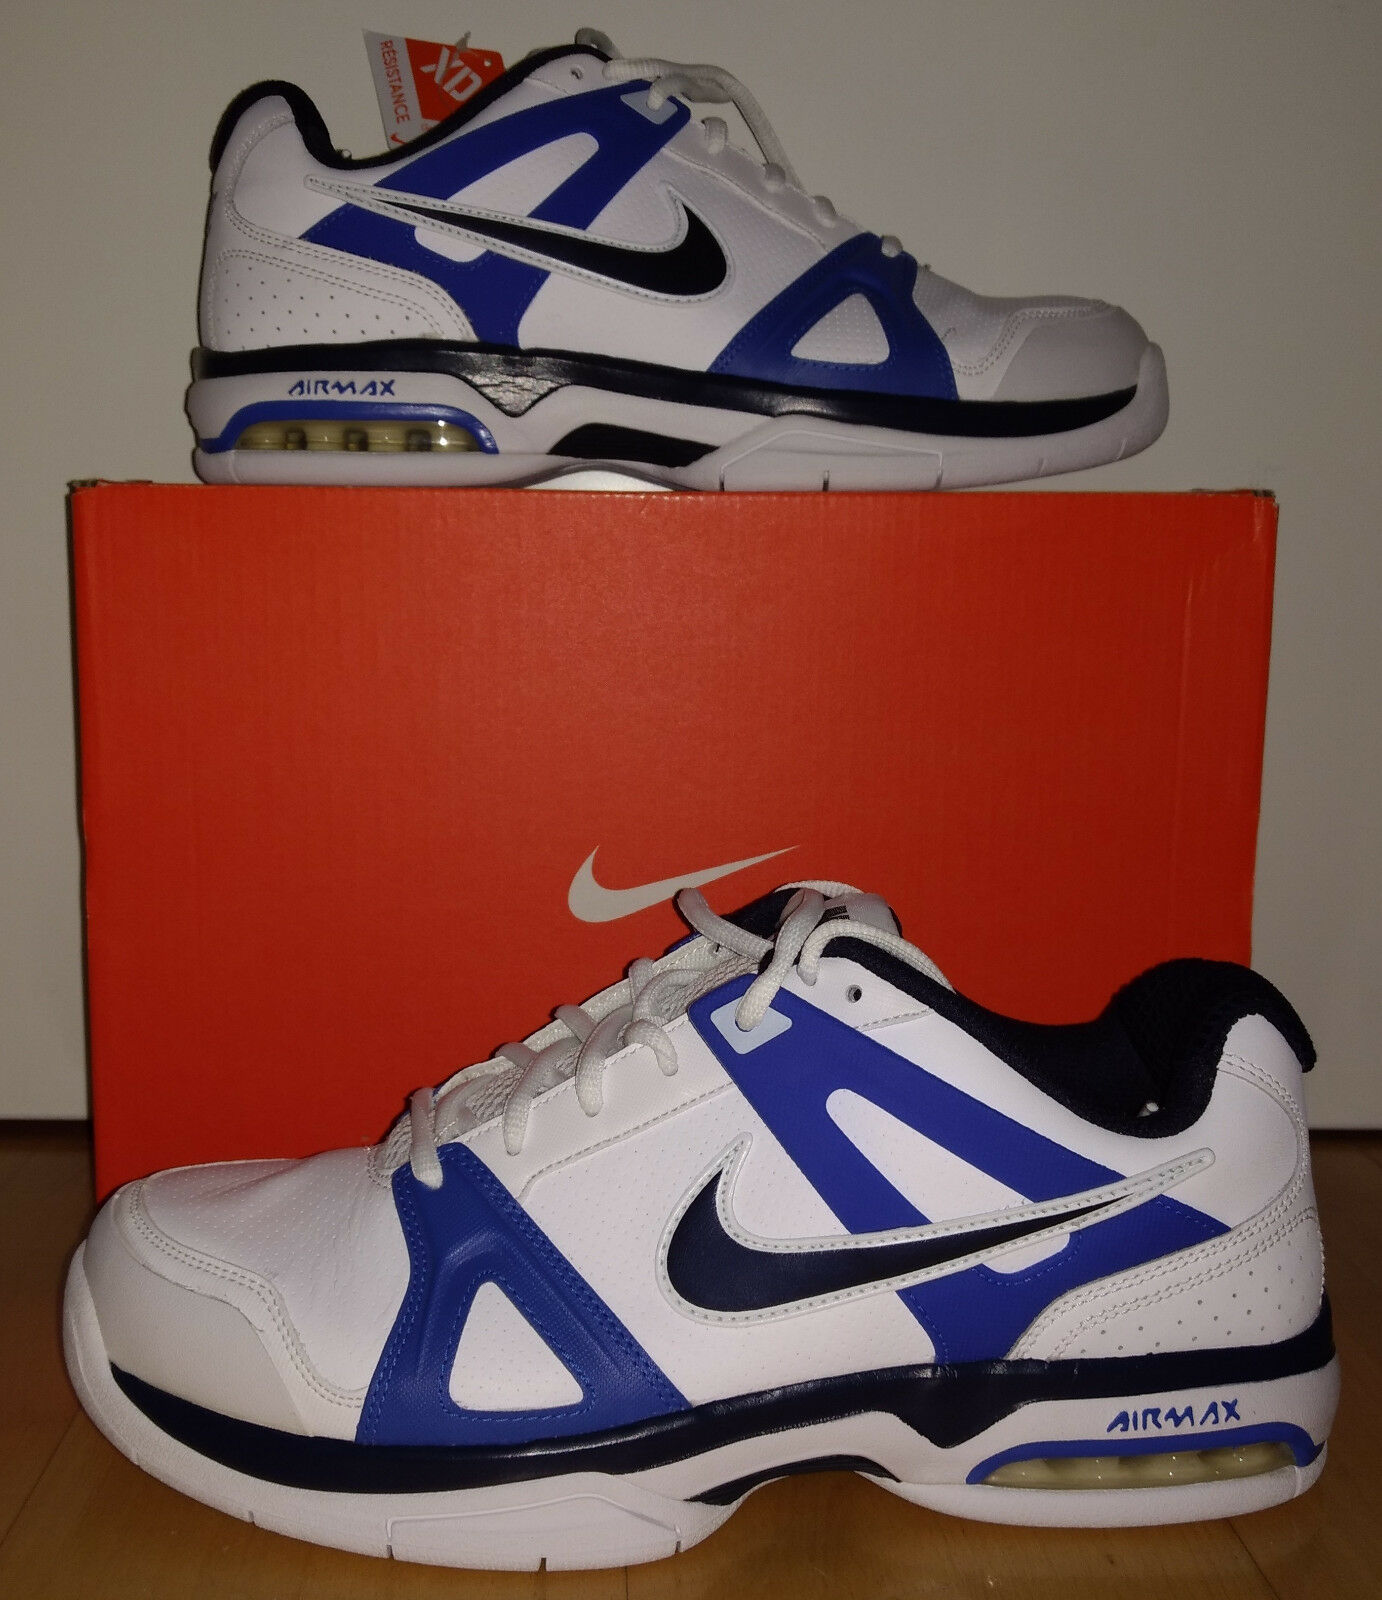 Nike Schuhe, Modell: Air Max Global Court, Gr. EUR:44,5, ungetragen, neu in OVP!